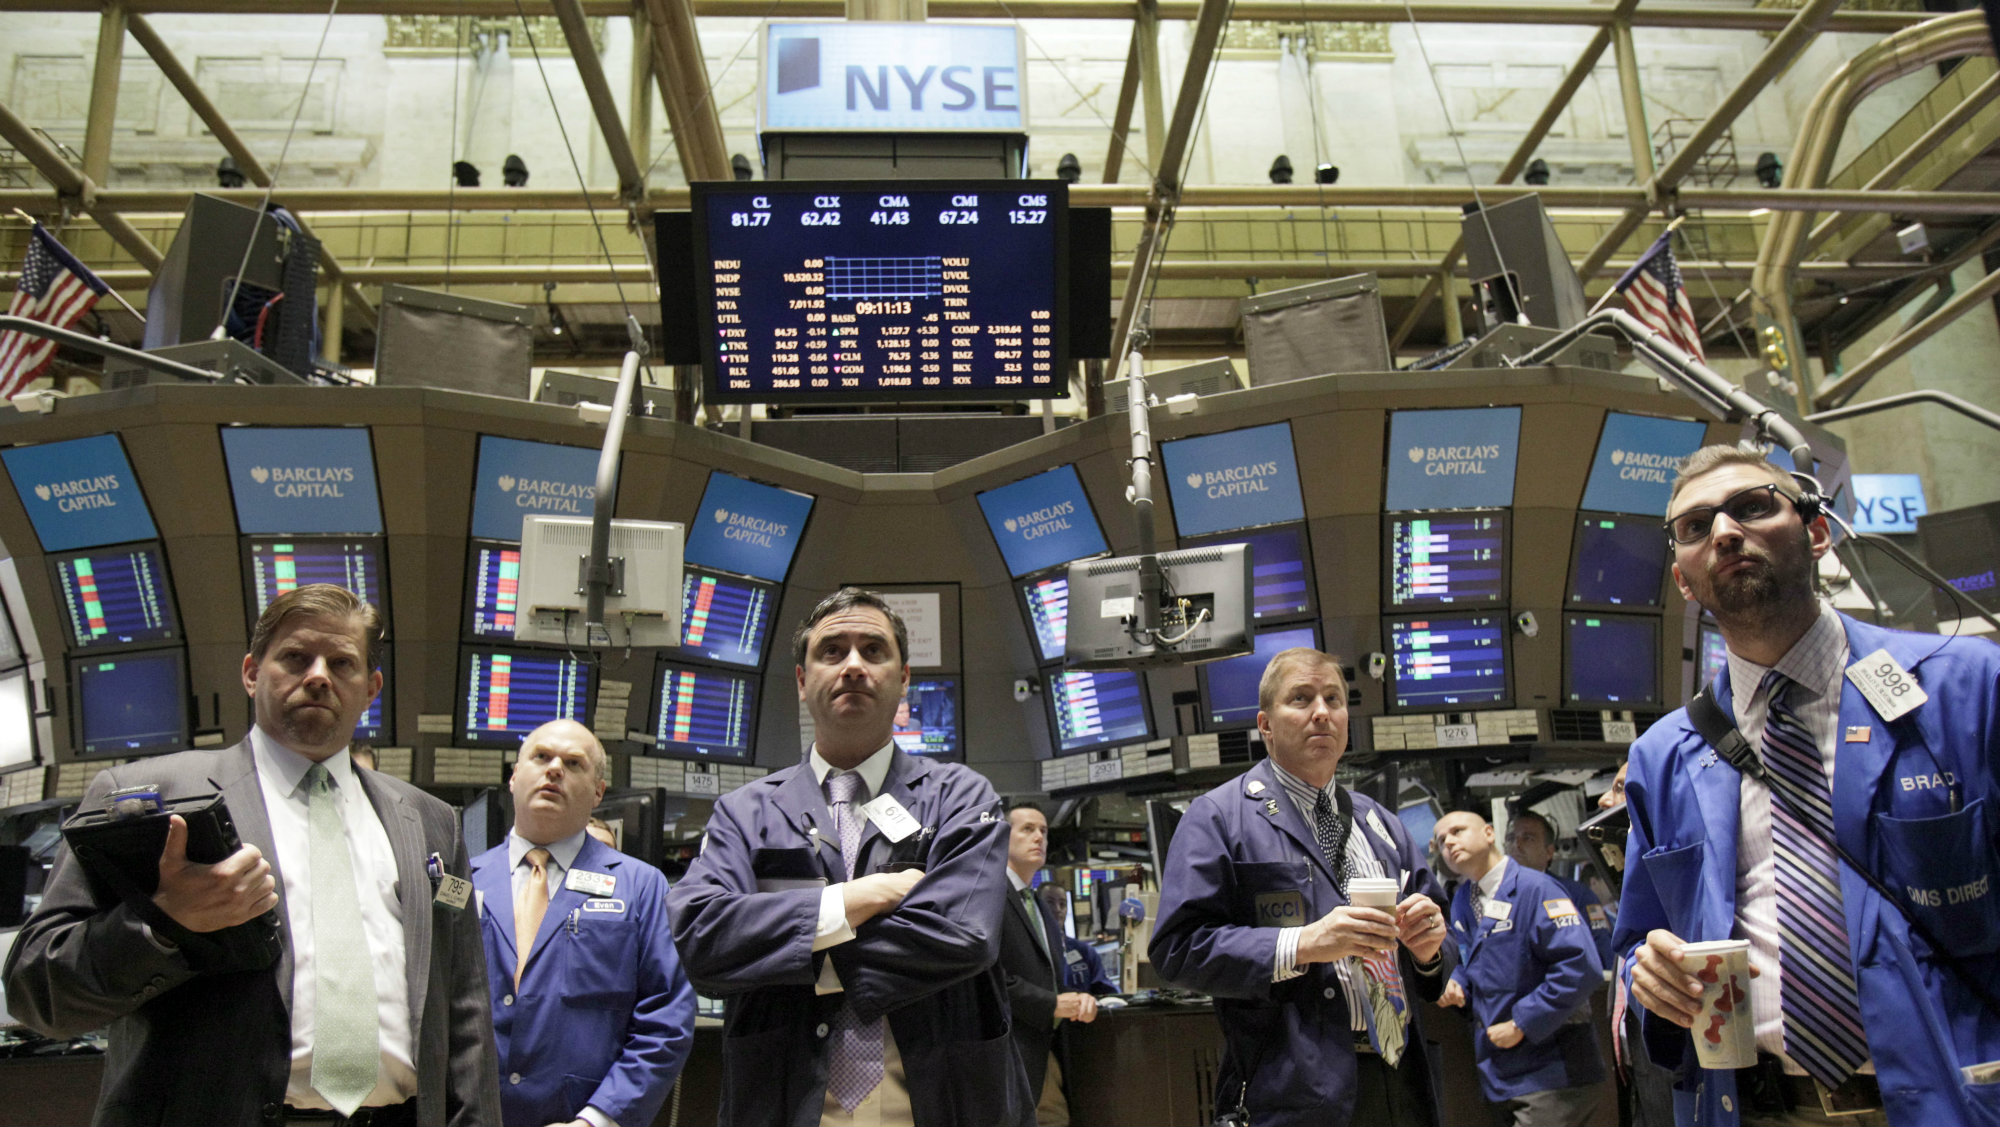 why the new york stock exchange nyse still has human brokers on rh qz com NYSE Market Hours NYSE Market Hours